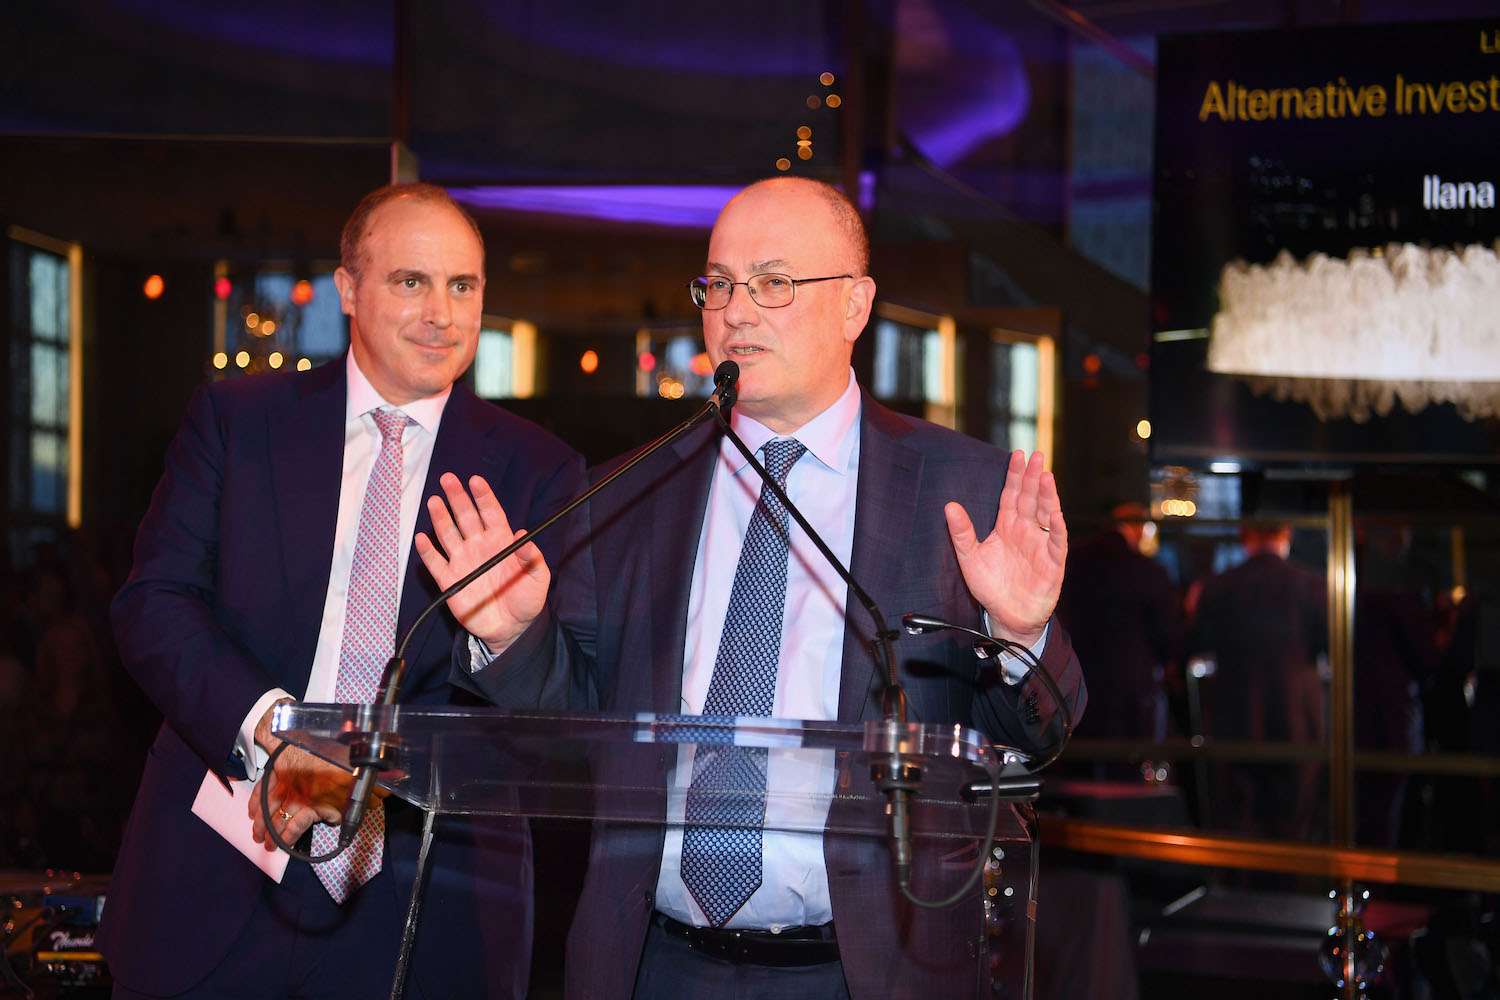 New York Mets Owner Steve Cohen's Incredible Net Worth Is More Than the Wealth of Many Countries